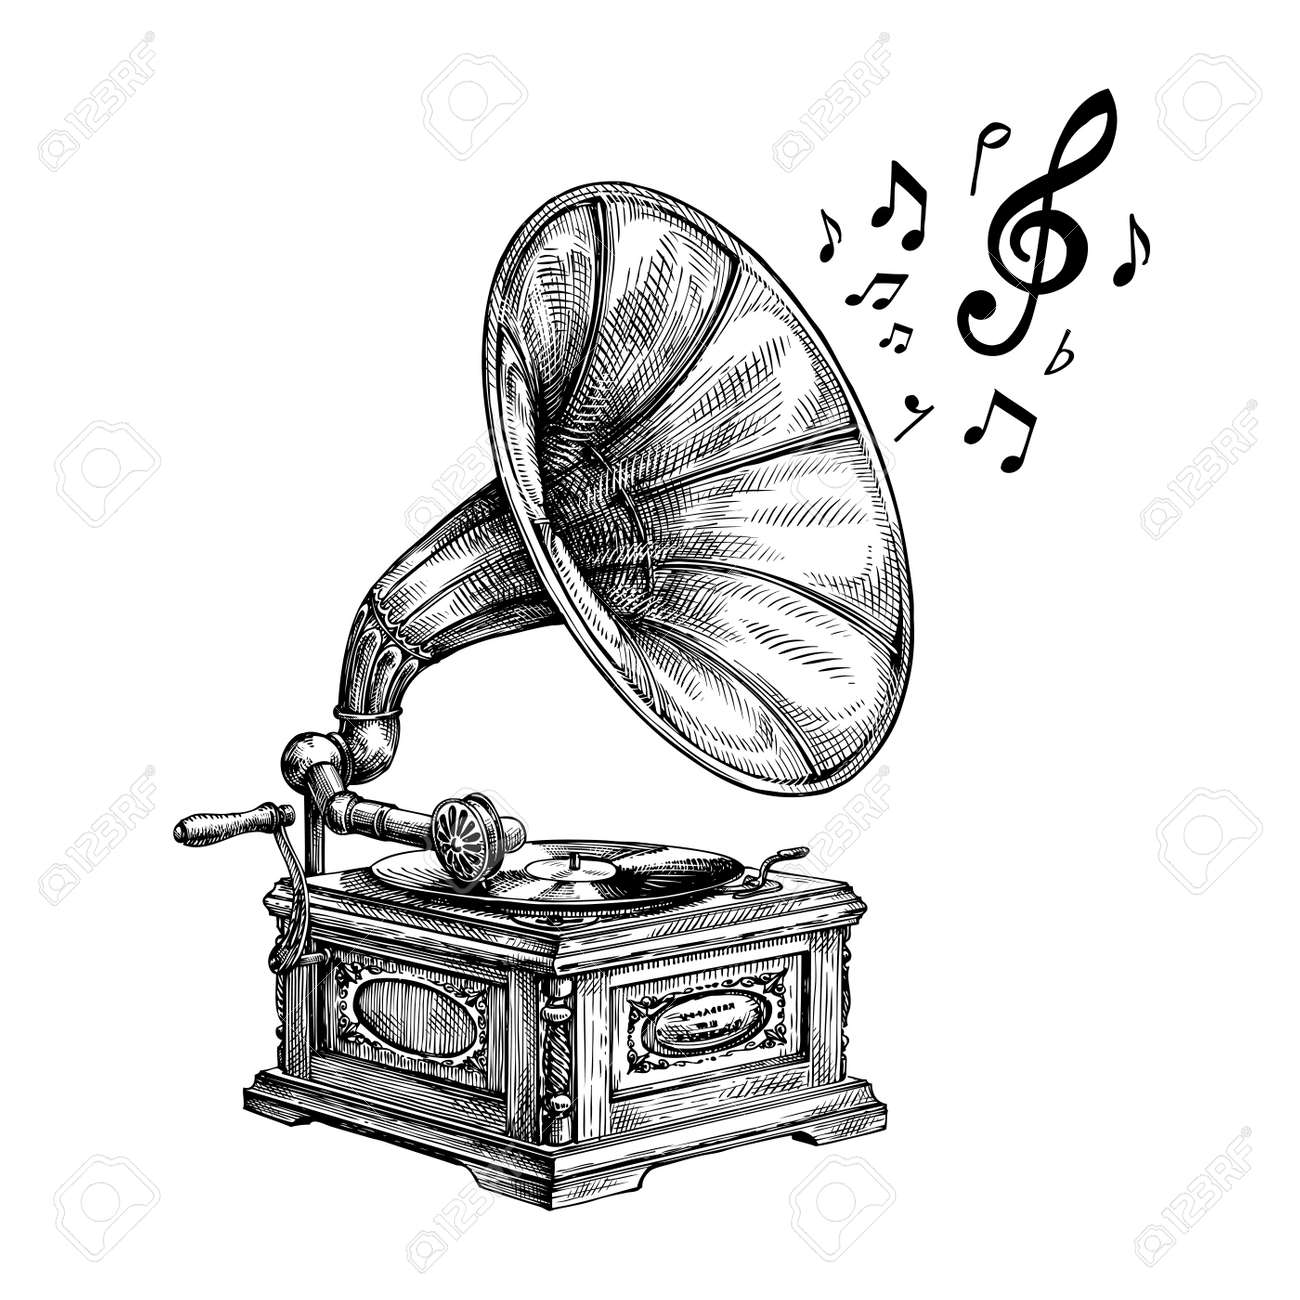 hand drawn vintage gramophone with music notes vector illustration royalty free cliparts vectors and stock illustration image 62204953 hand drawn vintage gramophone with music notes vector illustration